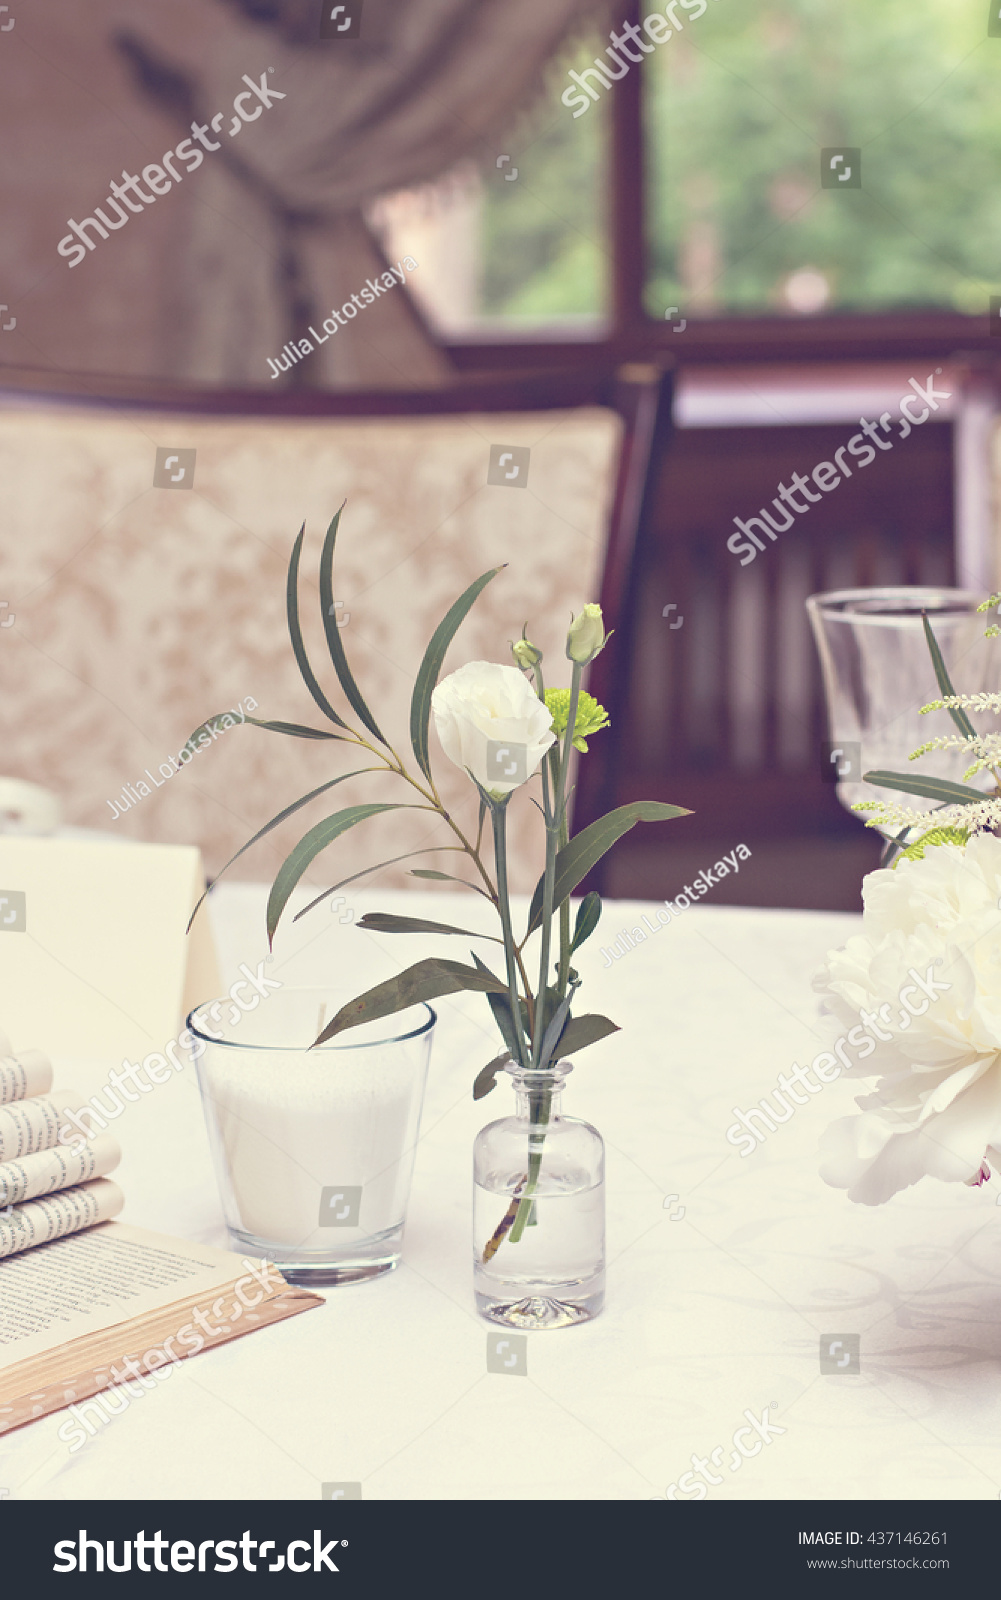 Bouquet Of White Flowers Wedding Table Decor Festive Table Setting